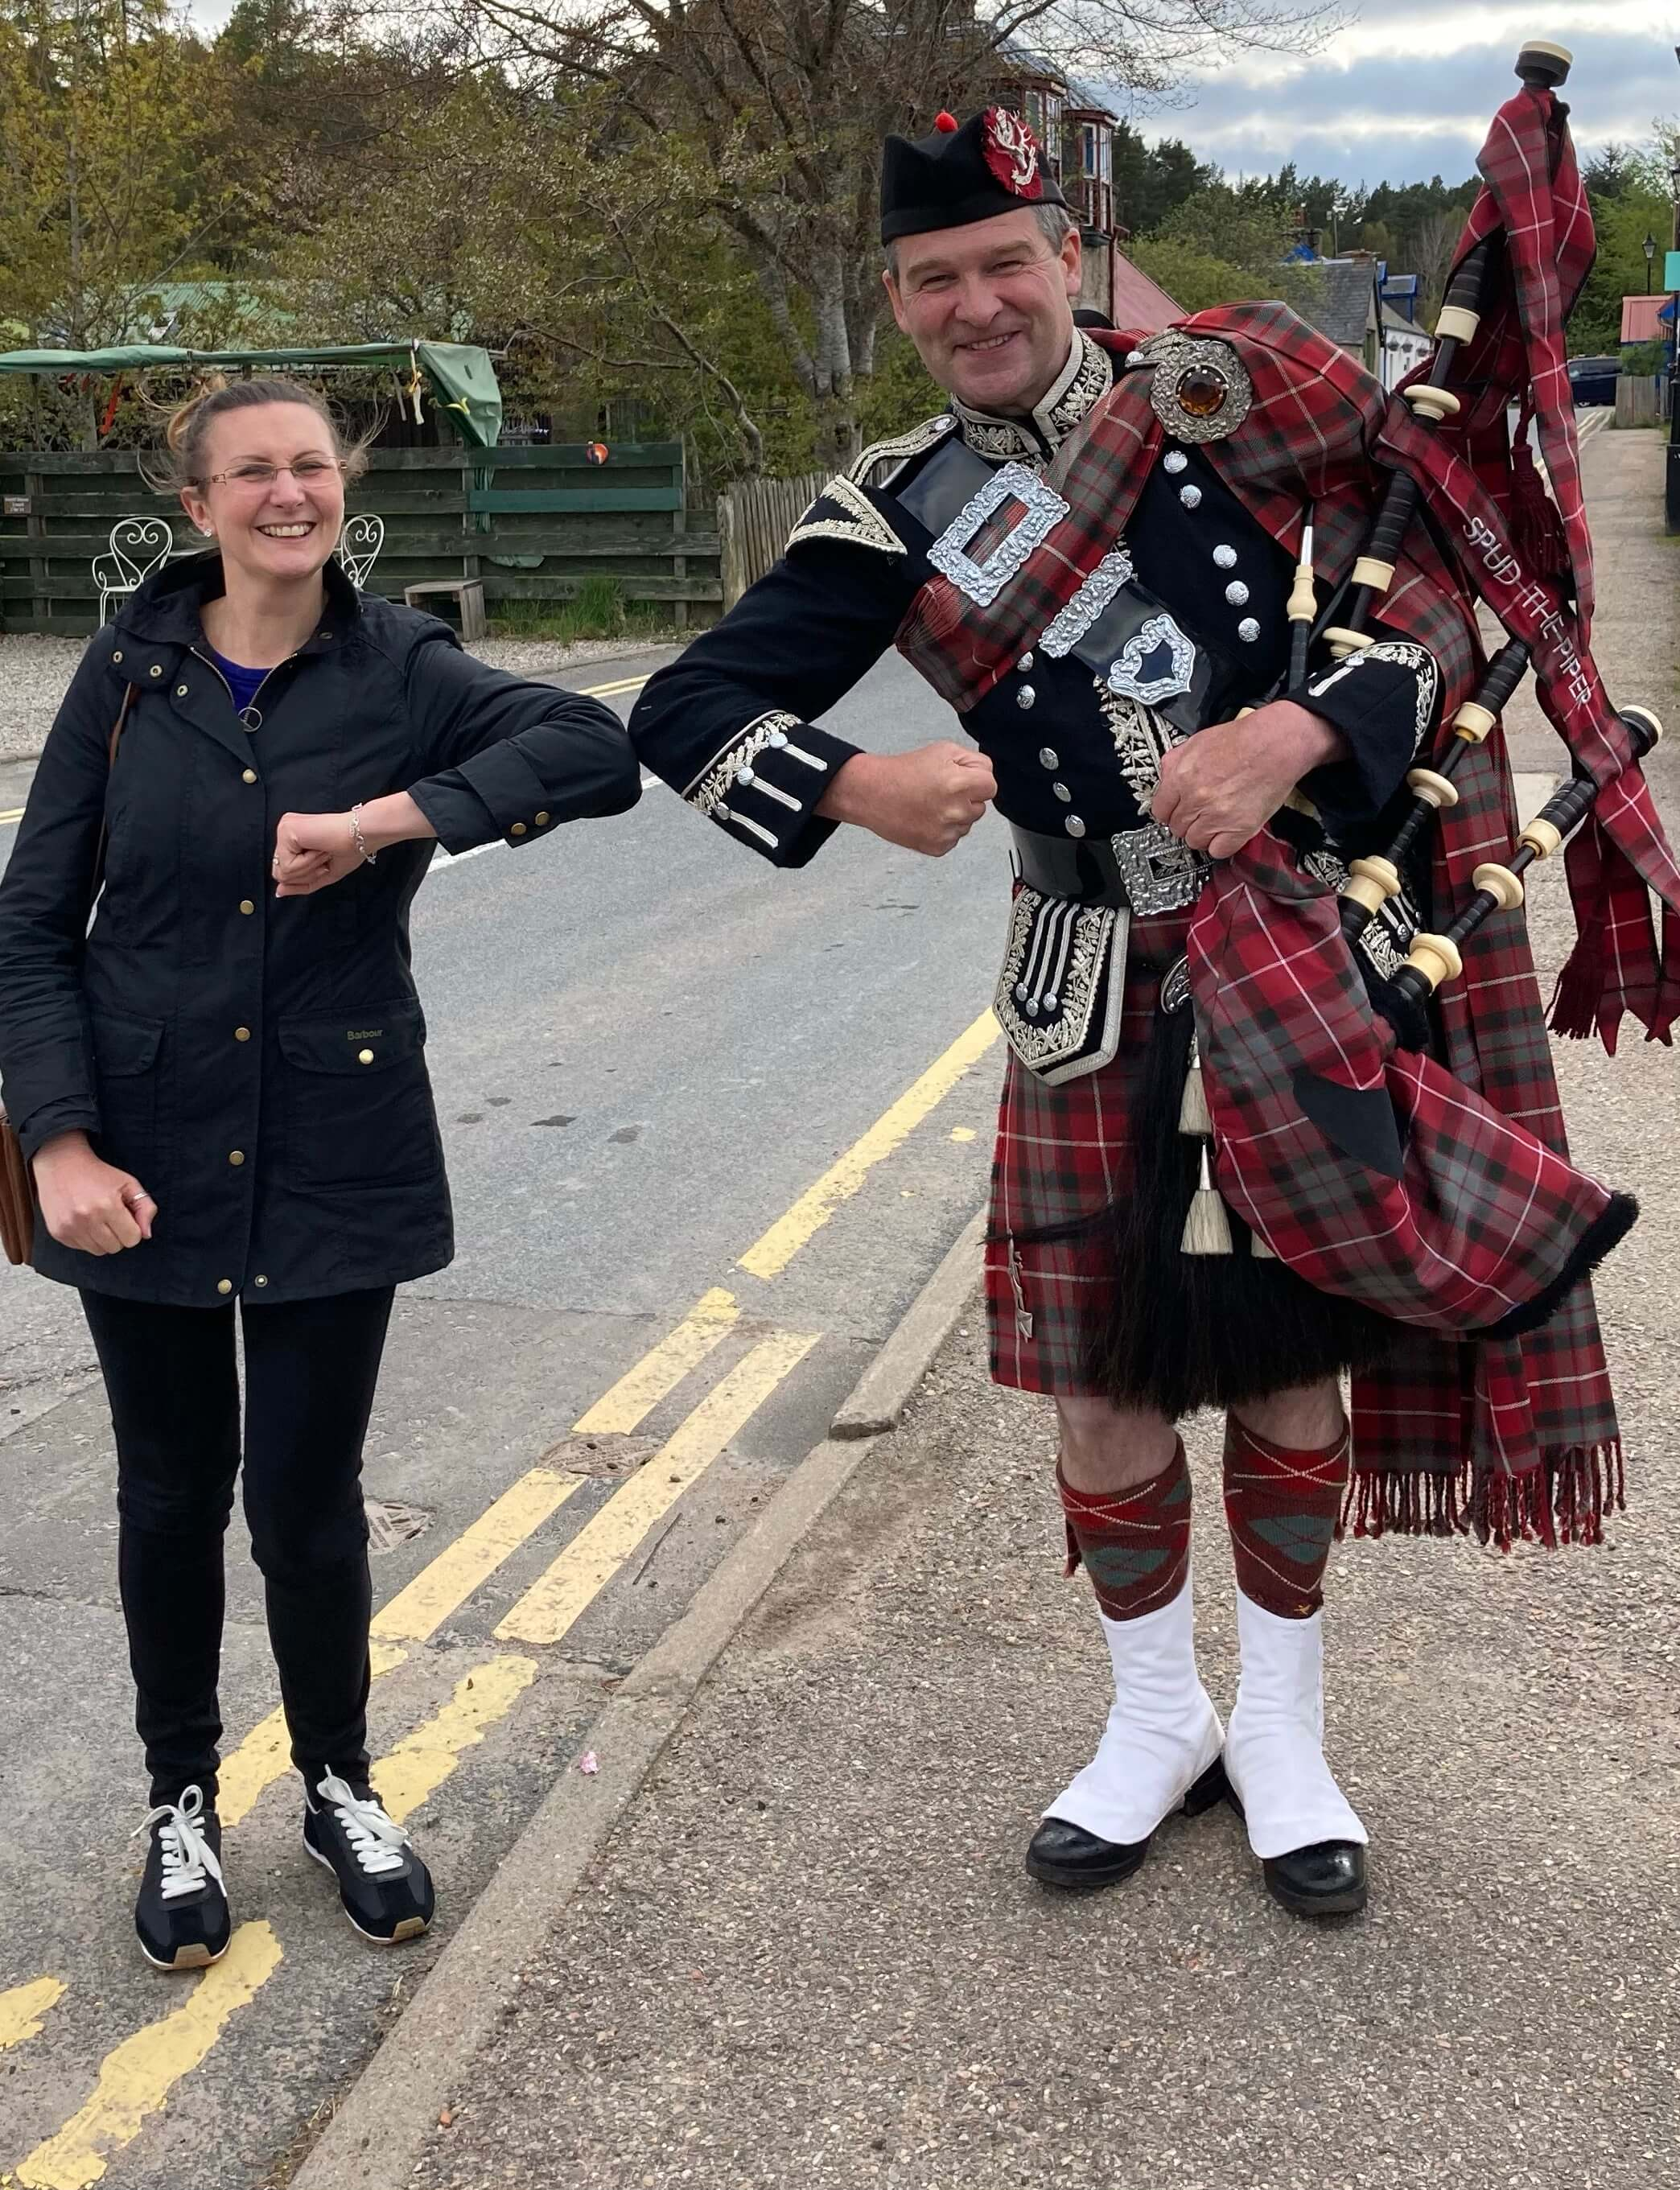 Back at the Carrbridge Hotel, Jo met Spud, a local bagpipe player. Credit: Joanna Roberts